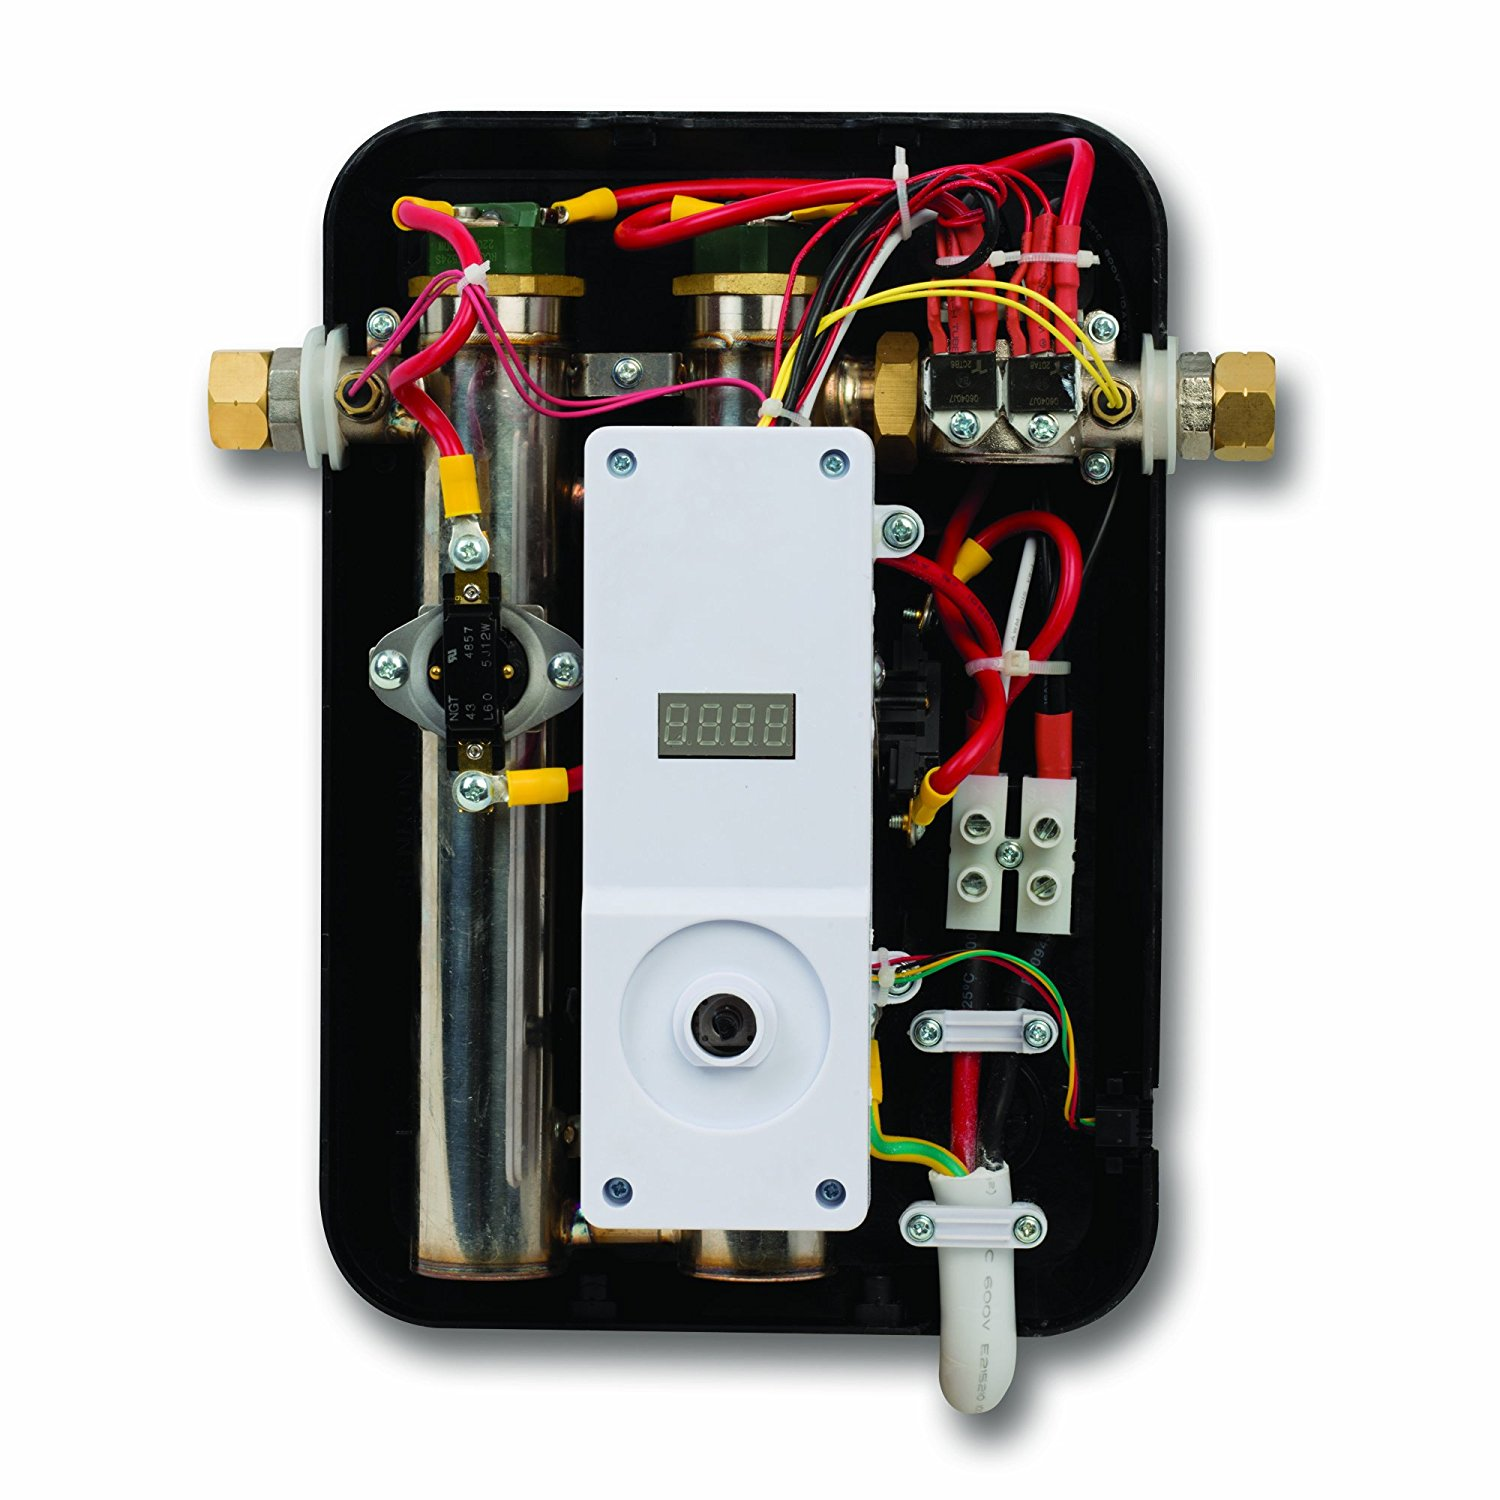 EcoSmart ECO 11 Tankless Water Heater